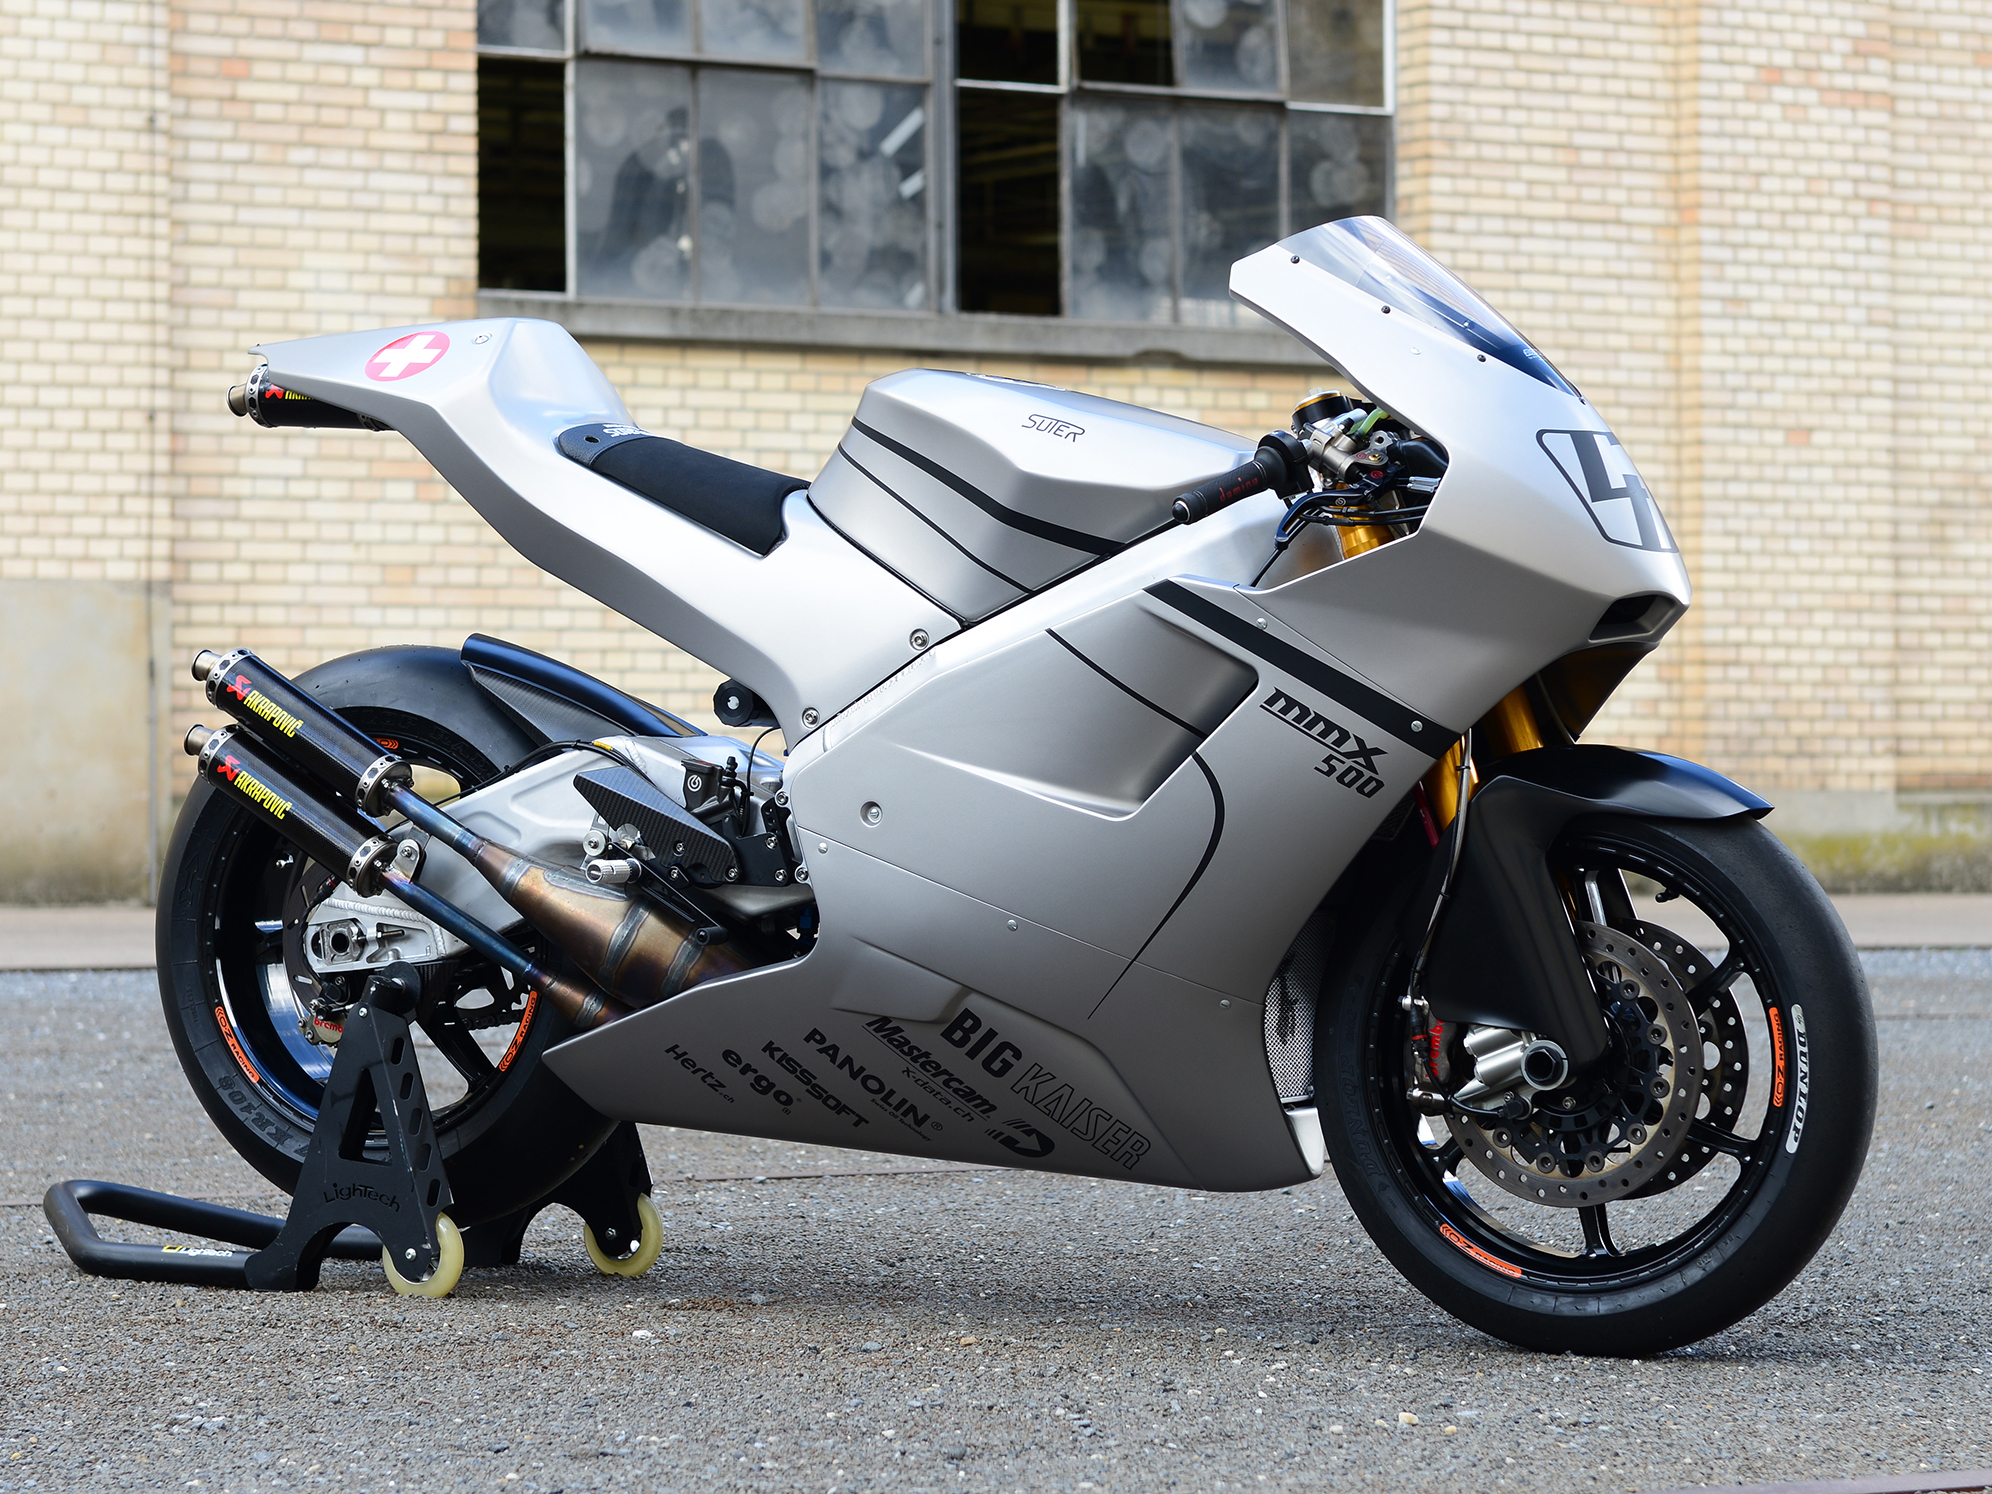 You too can have a real 576cc V4 two-stroke or Moto2